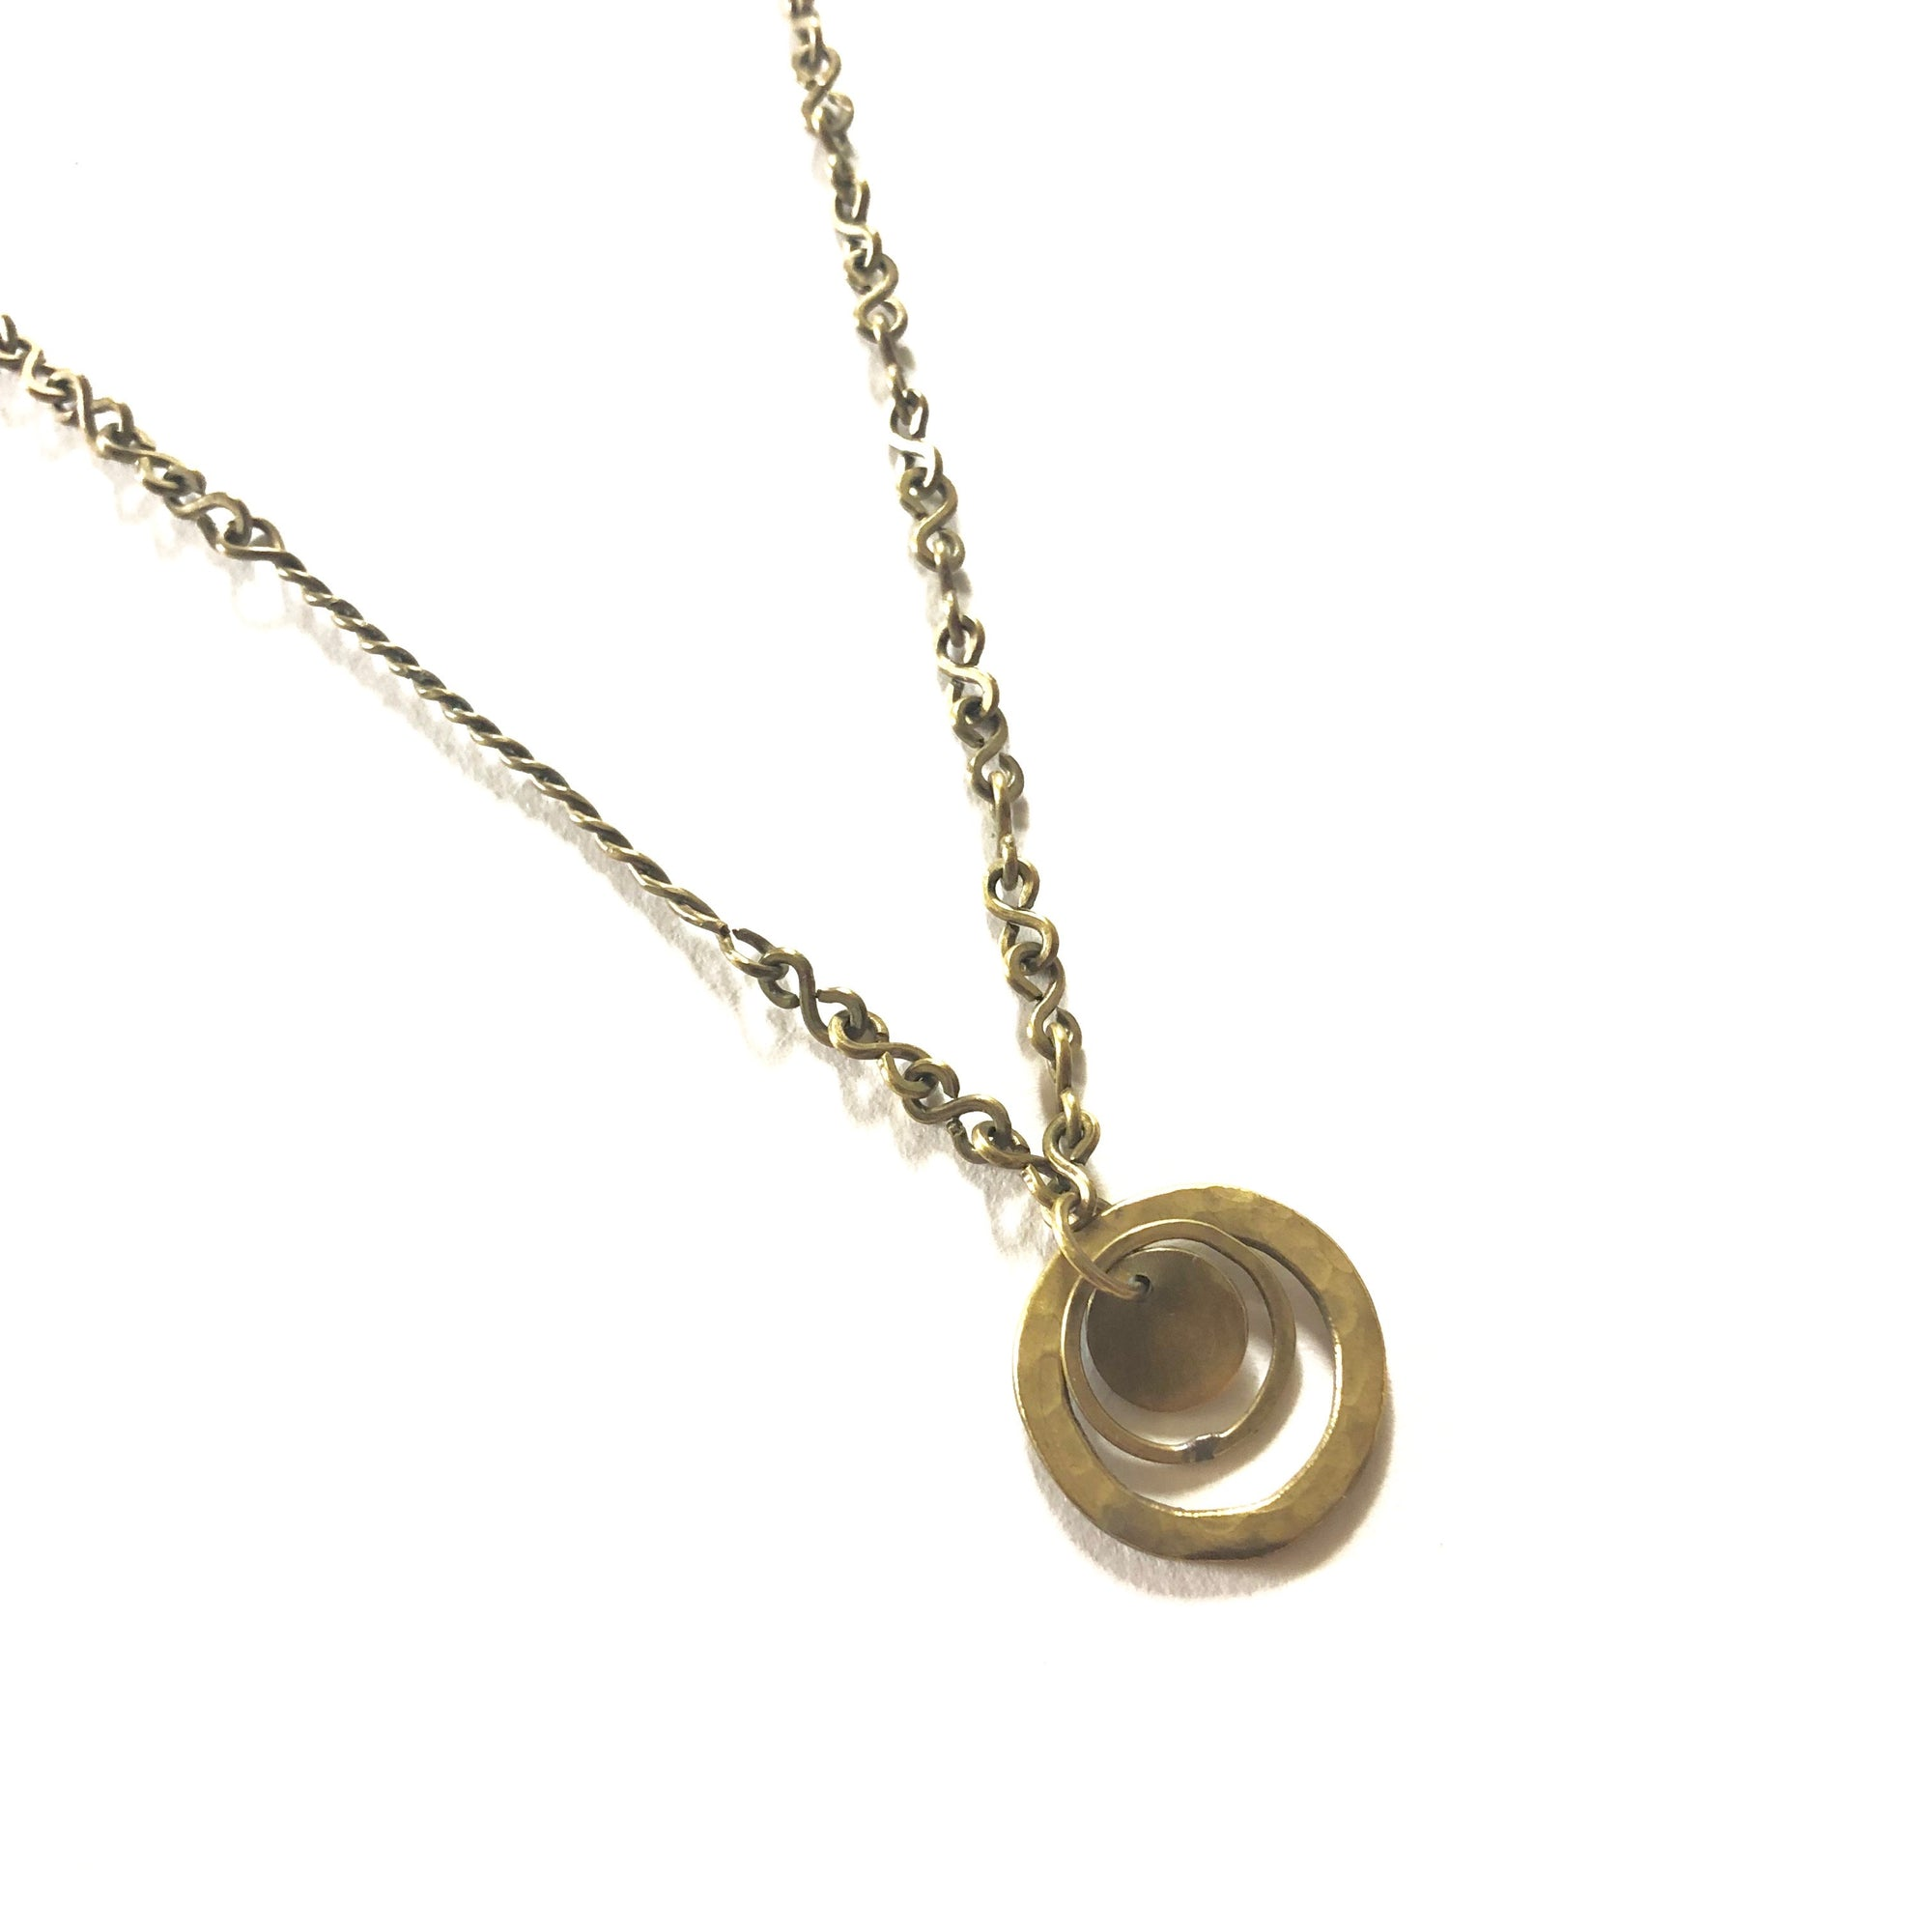 Suspended Circle Necklace